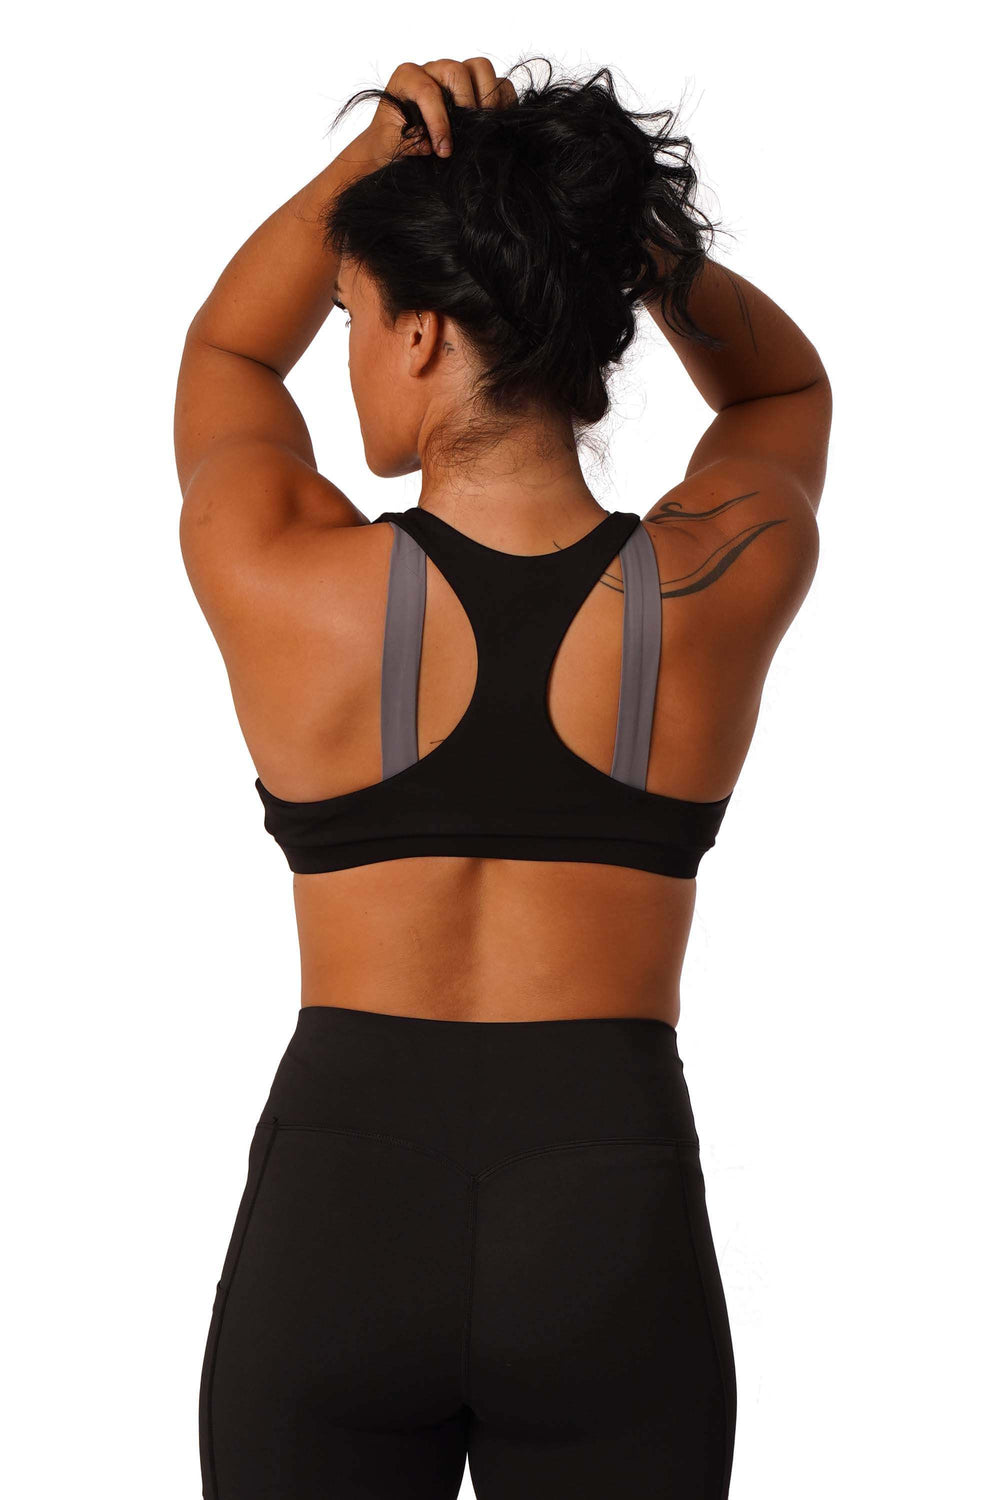 OFF THE POLE Jumelle Sports Bra - Slate Grey